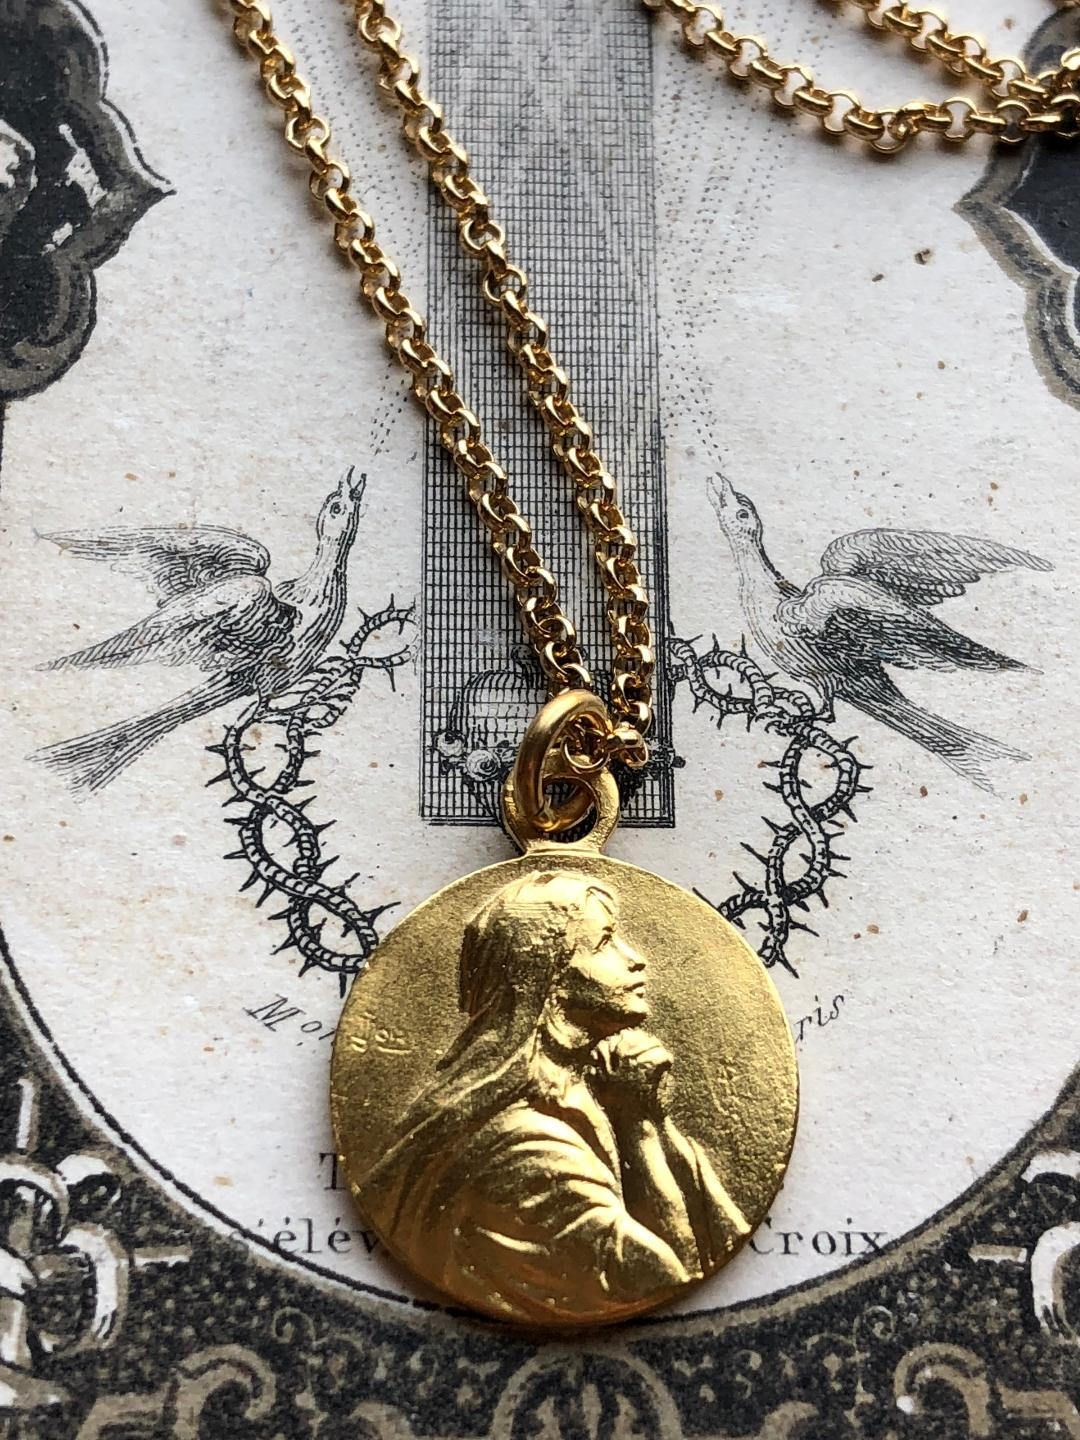 Small vintage french 18k gold plated silver saint mary magdalene small vintage french 18k gold plated silver saint mary magdalene medal pendant necklace catholic jewelry religious mozeypictures Choice Image